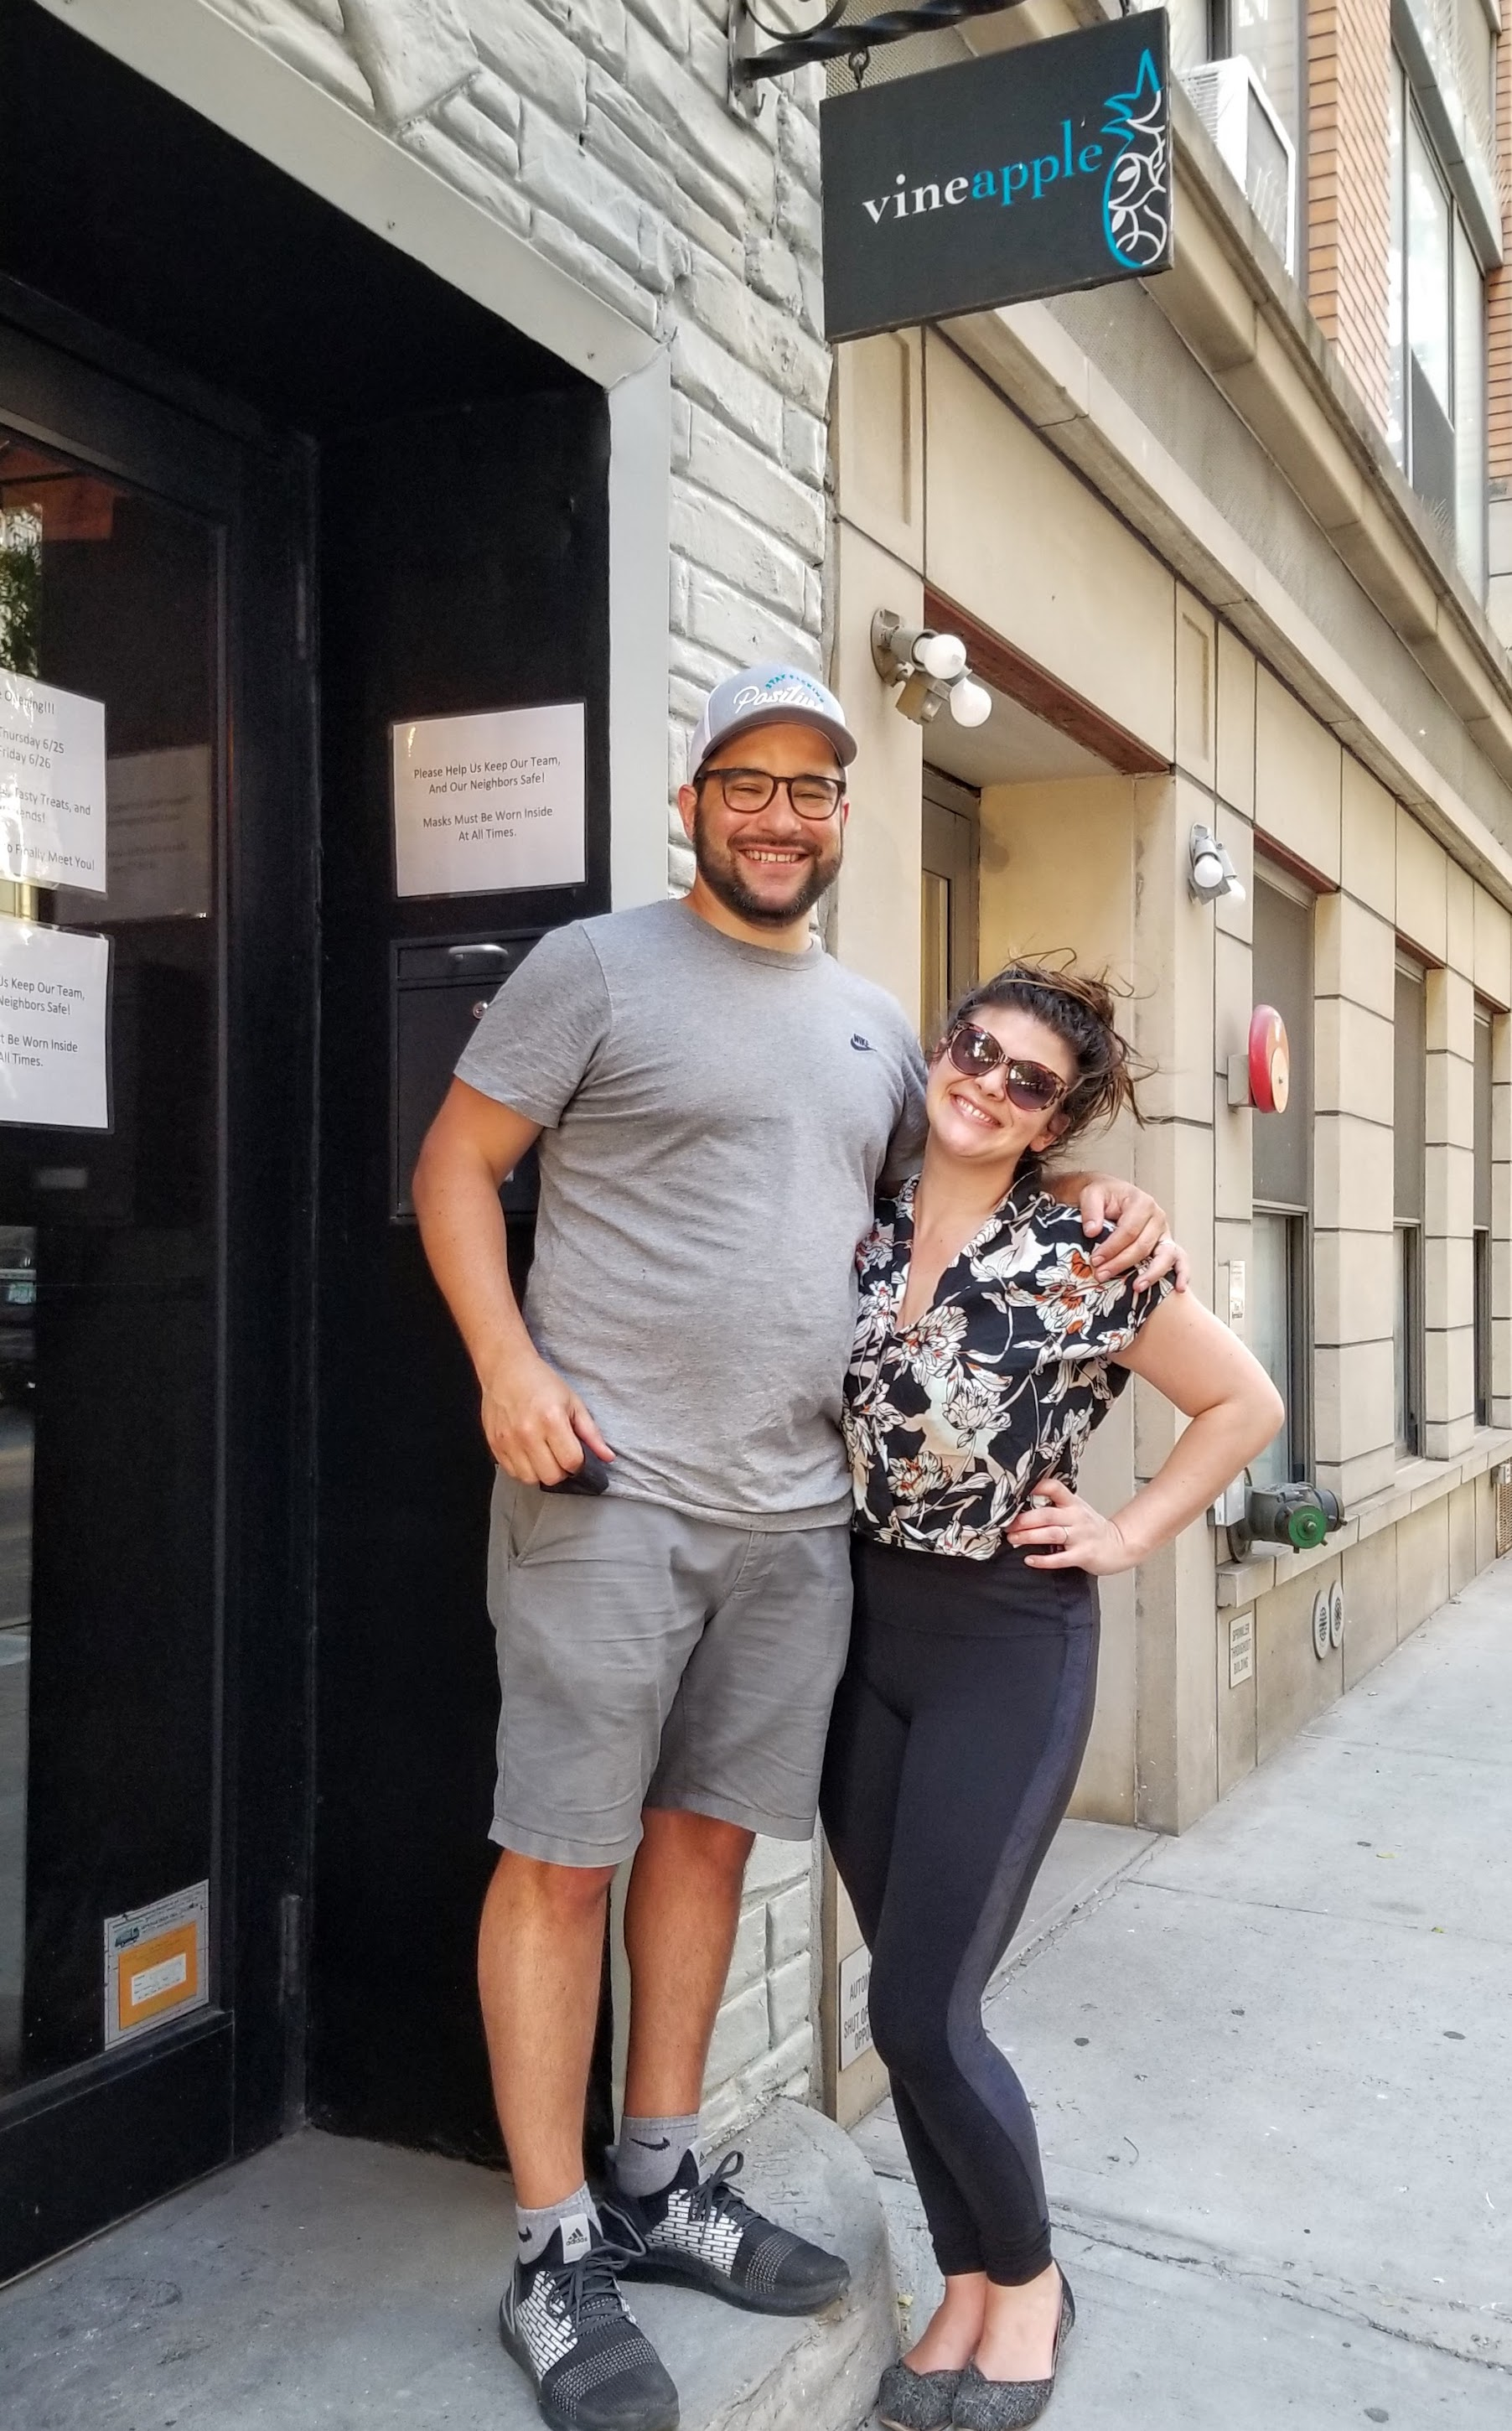 Aubrie Therrien and Zac Rubin, new owners of Vineapple